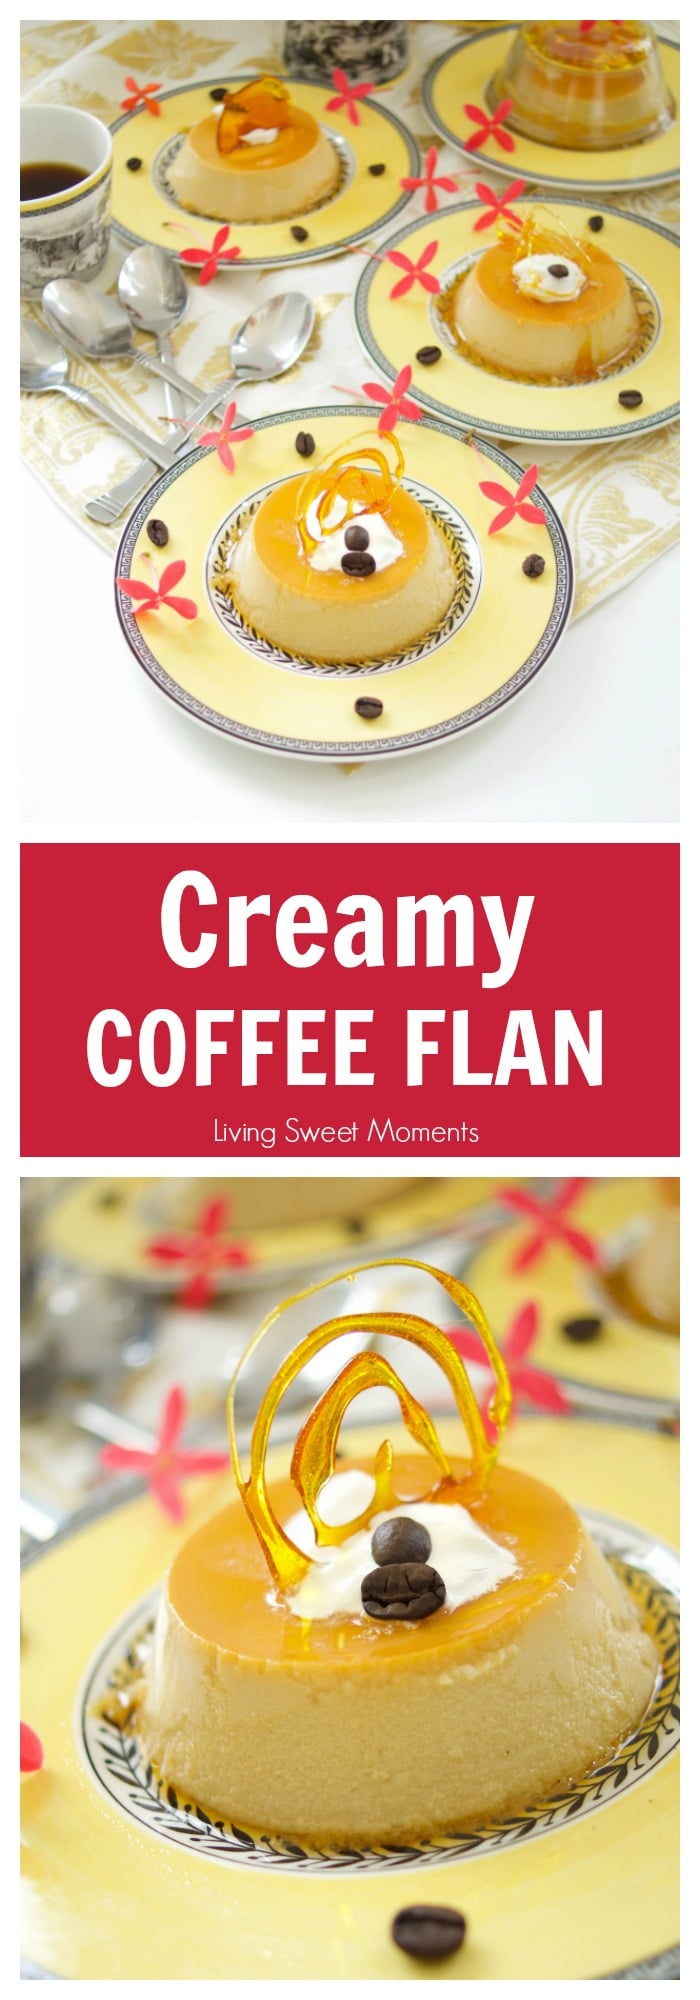 This easy coffee flan recipe is creamy and sweet with a nice java flavor for the coffee lovers. The perfect gluten free dessert for parties & celebrations.More gluten free desserts at livingsweetmoments.com